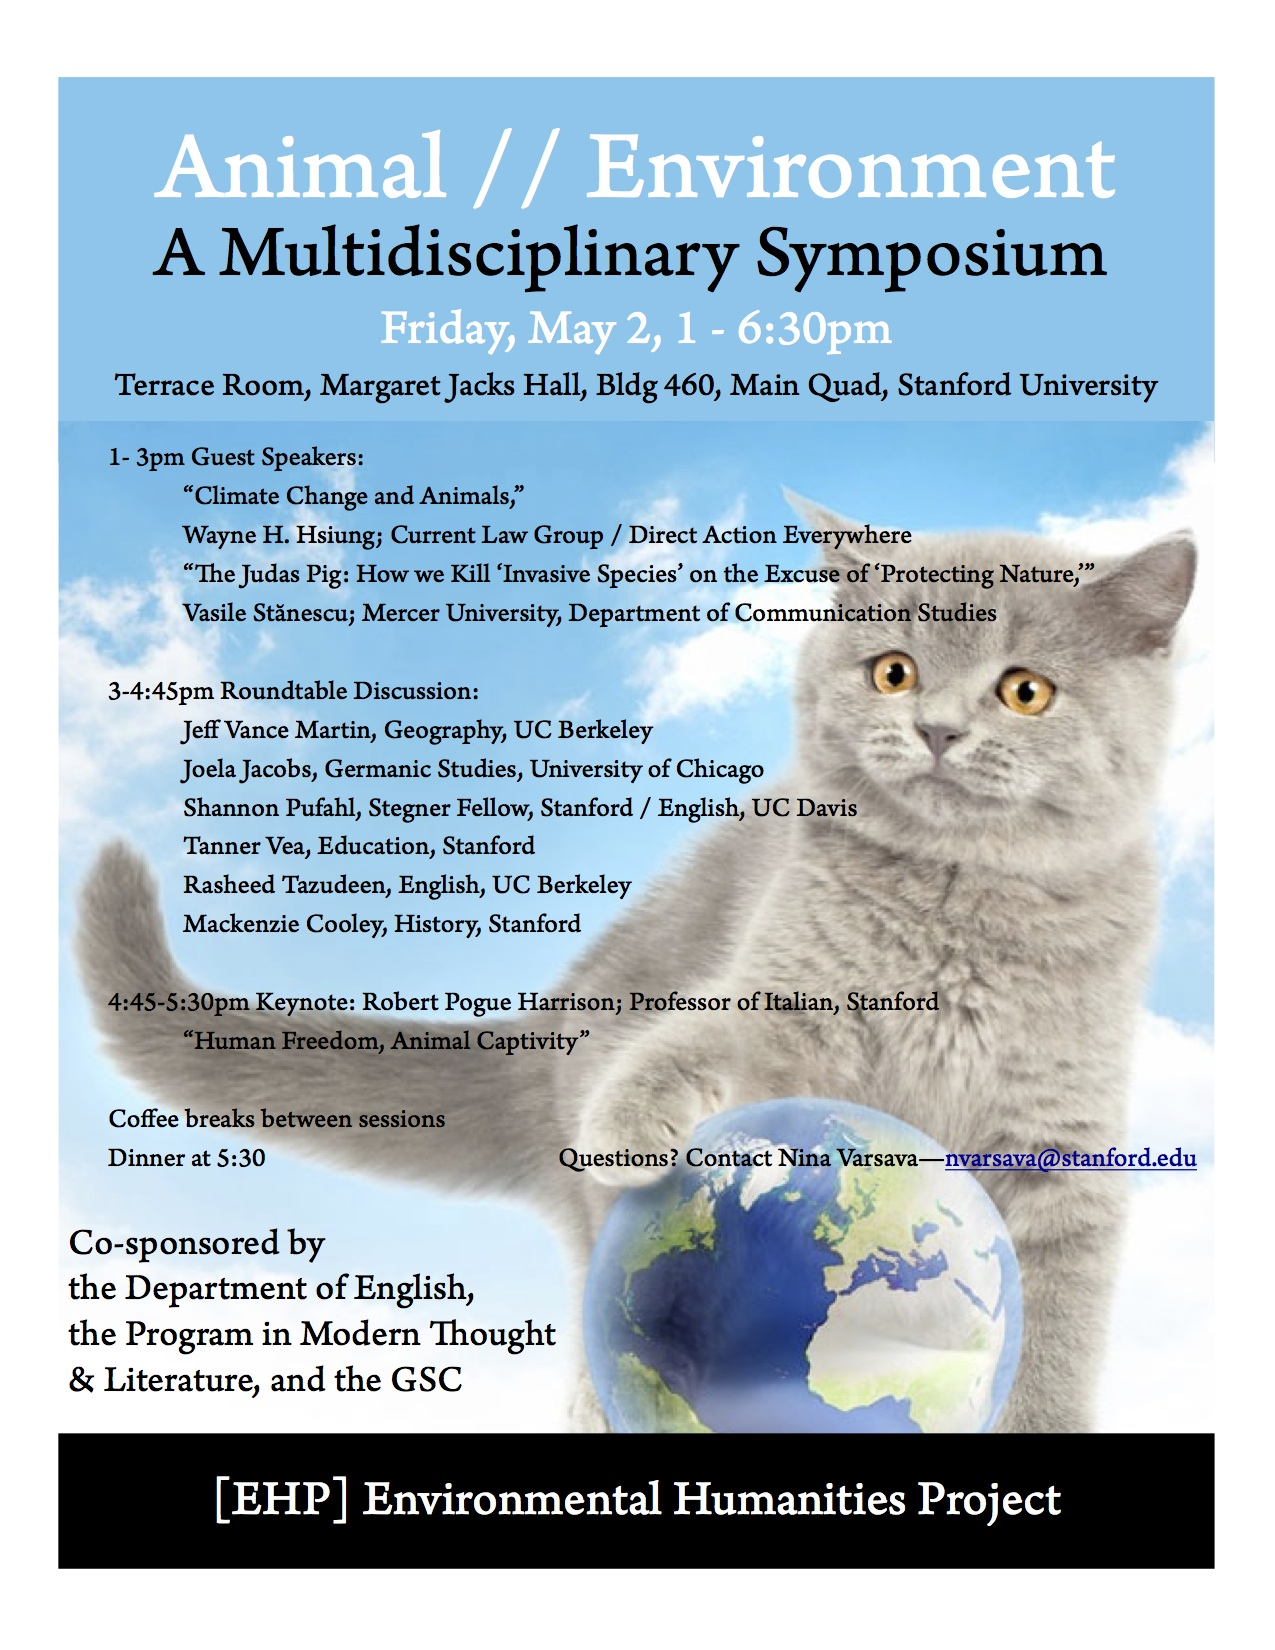 Animal and Environmental Studies Symposium